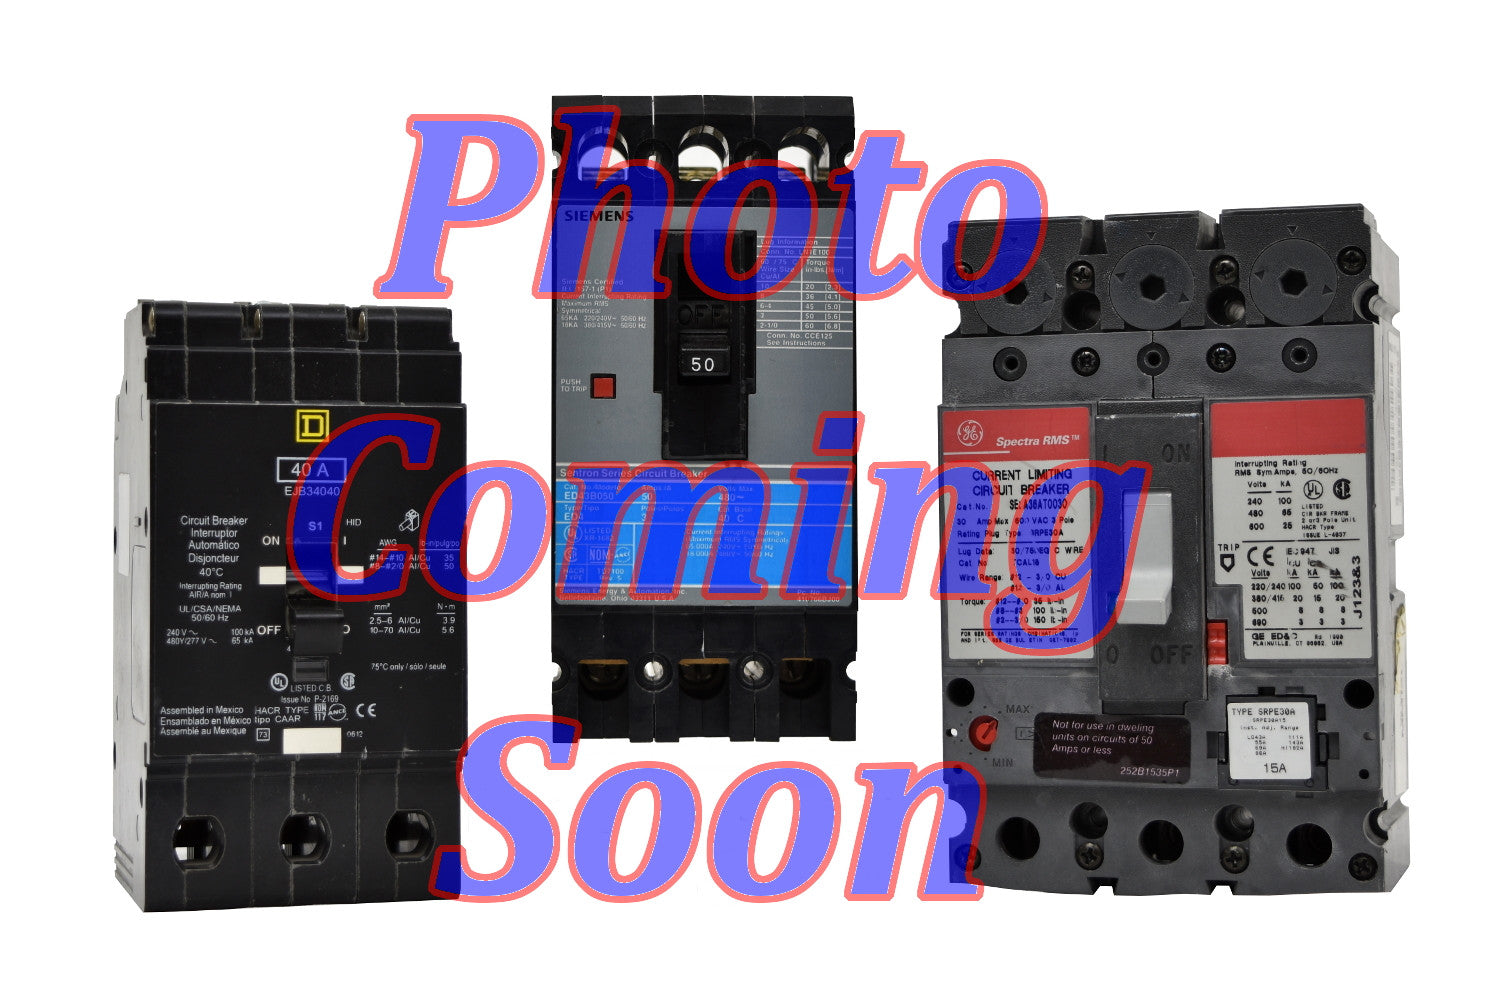 General Electric FCS326TE060R2 Circuit Breakers